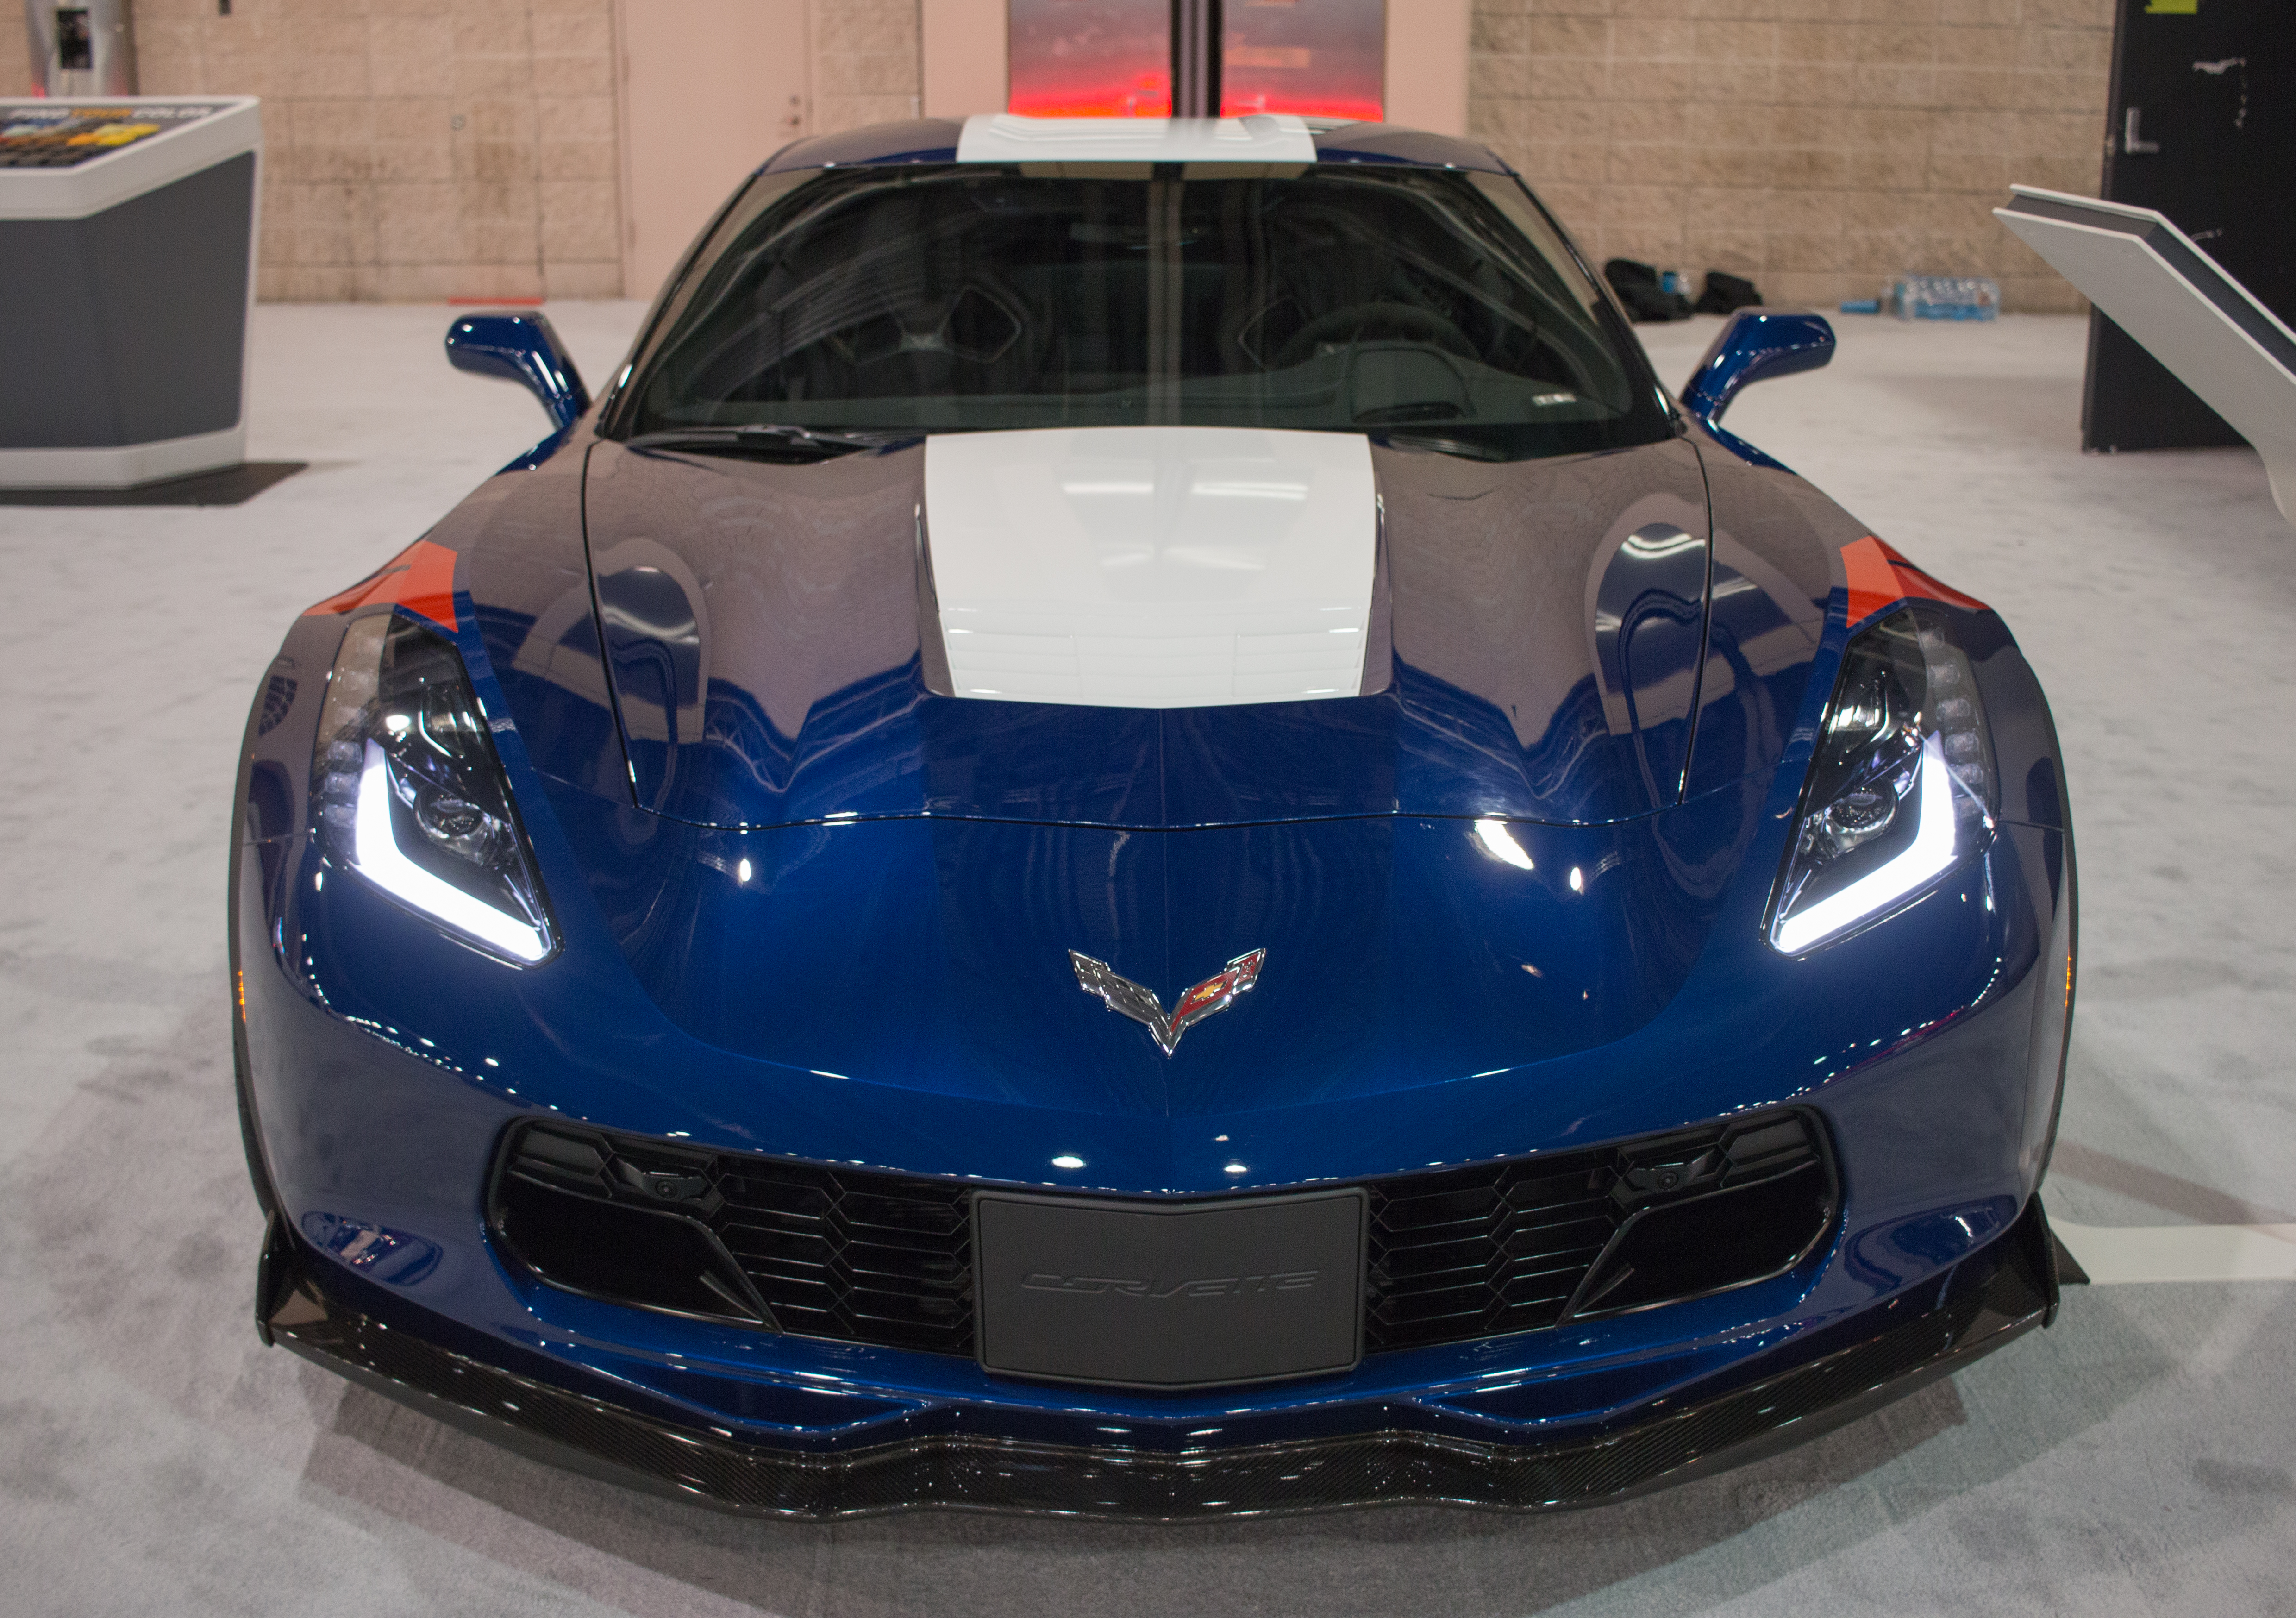 philly_auto_show_2017-1-36